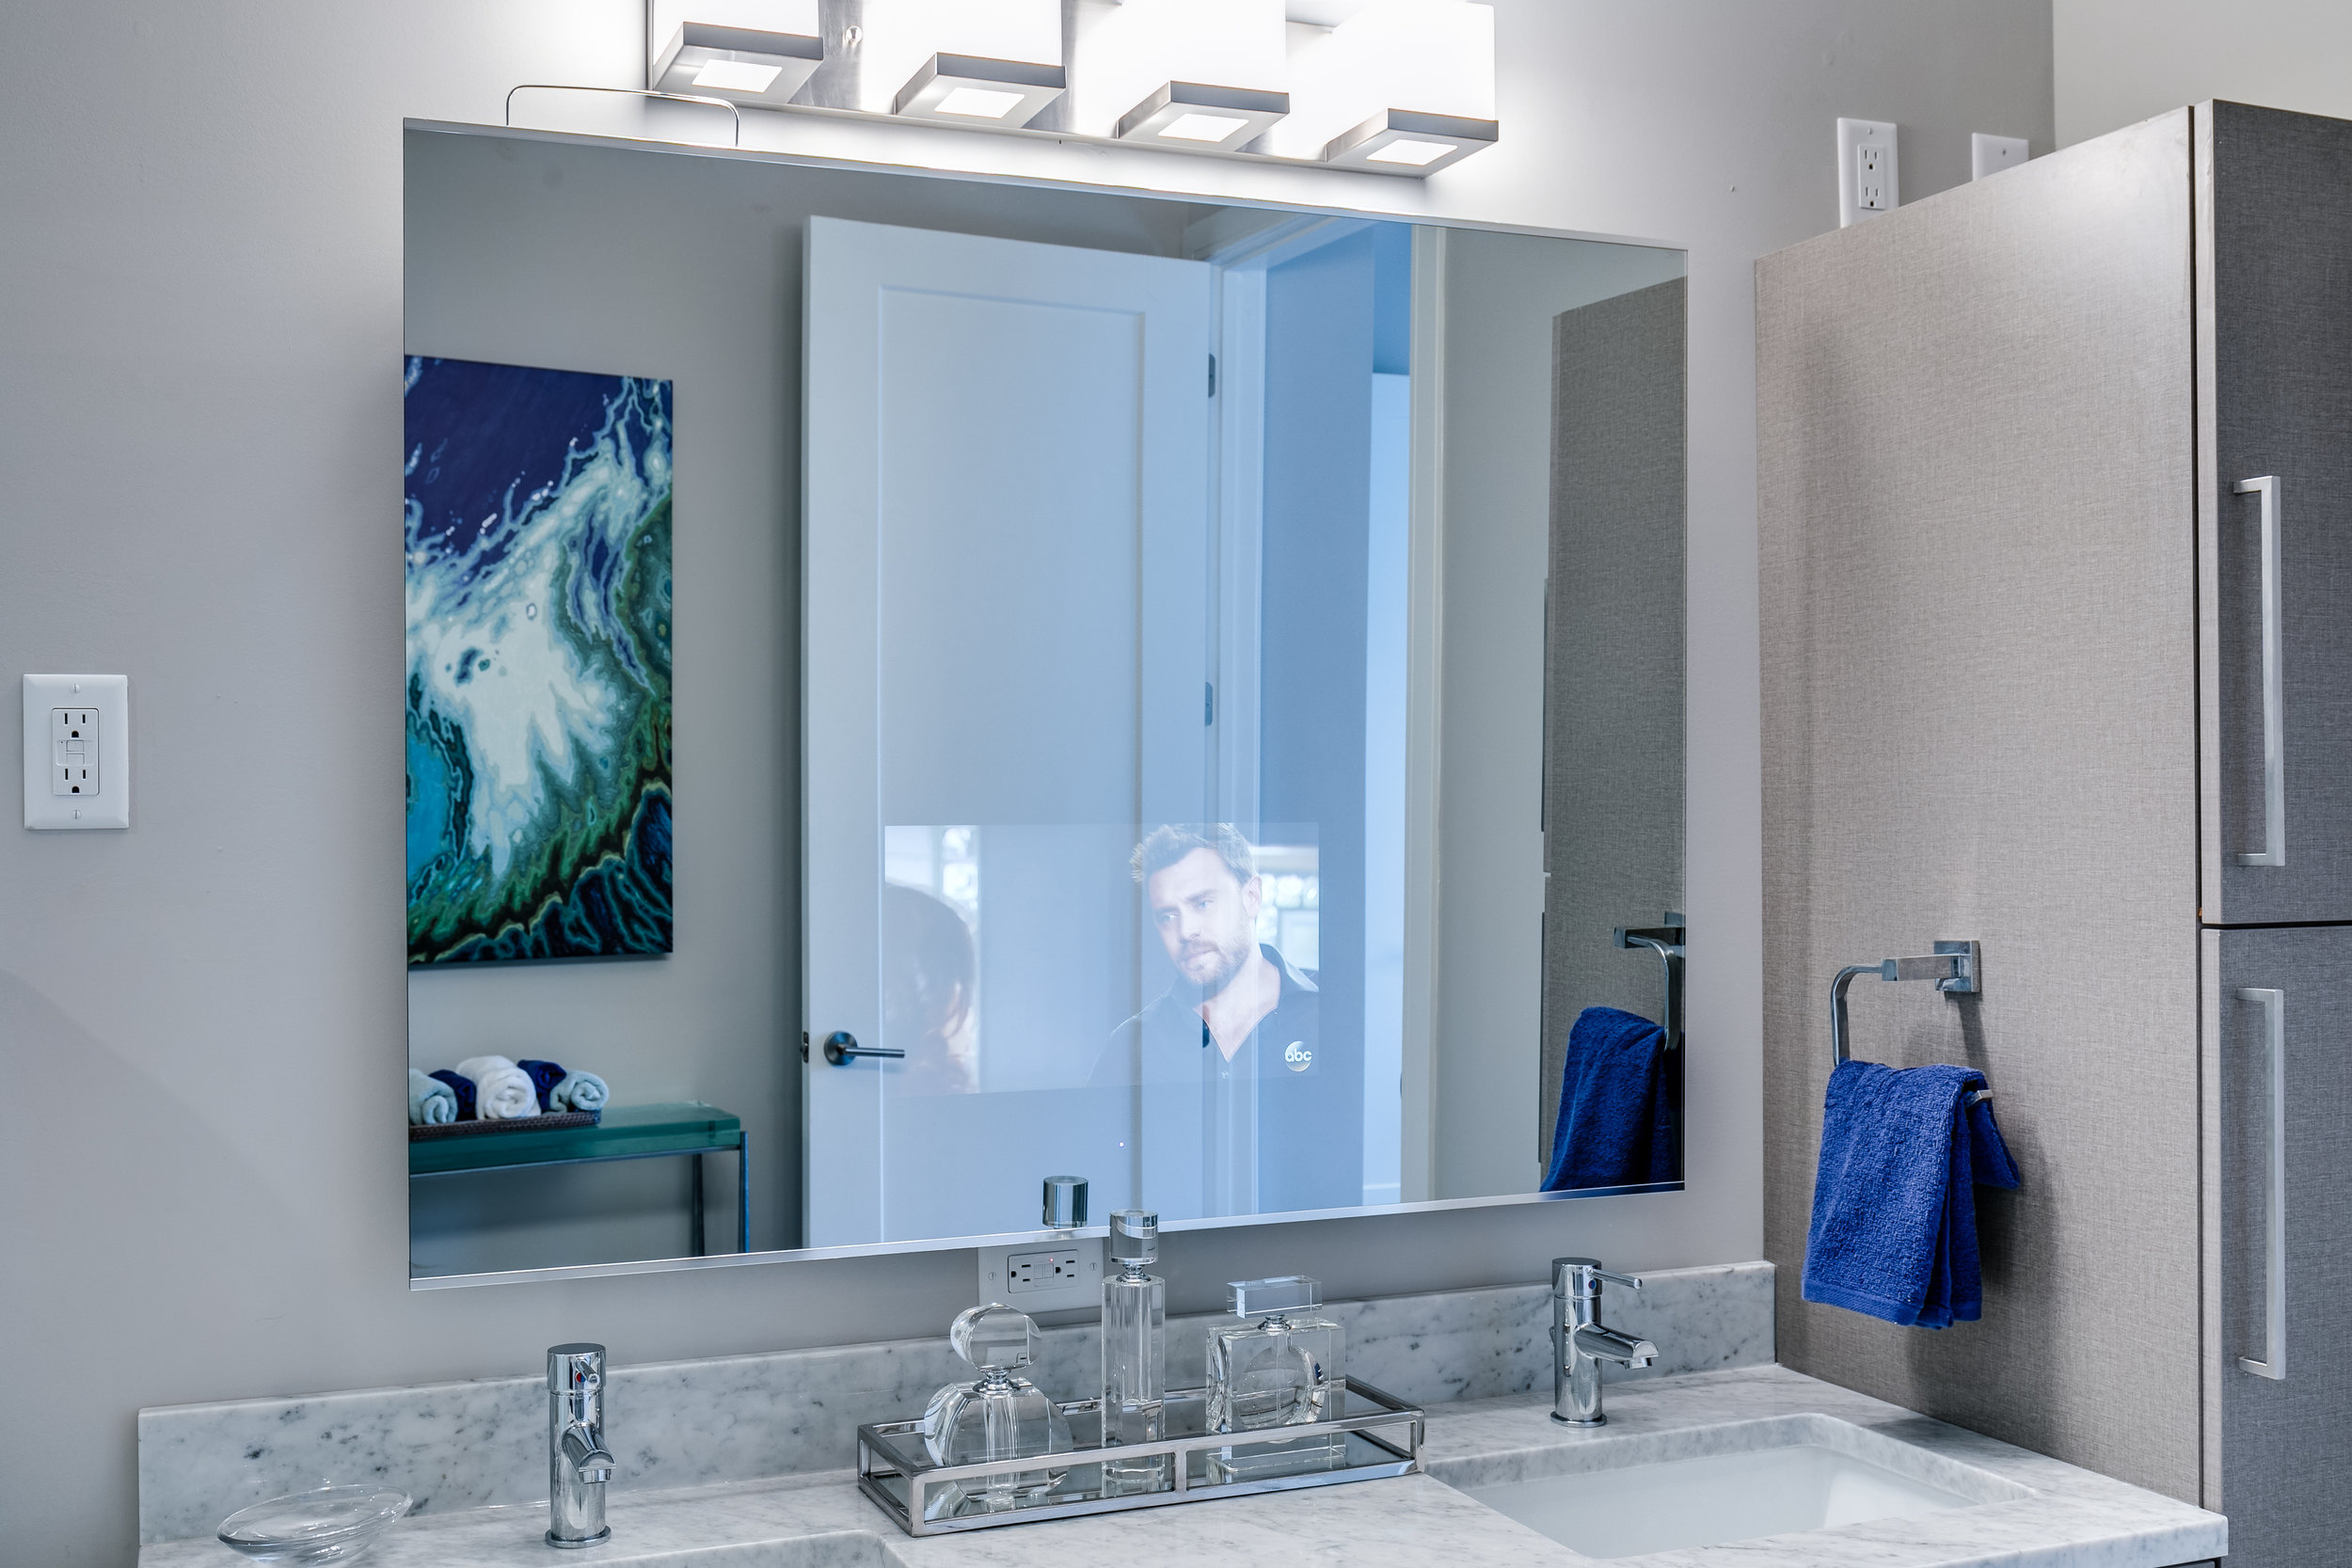 A TV inside the master bathroom mirror in a unit at The Barton.